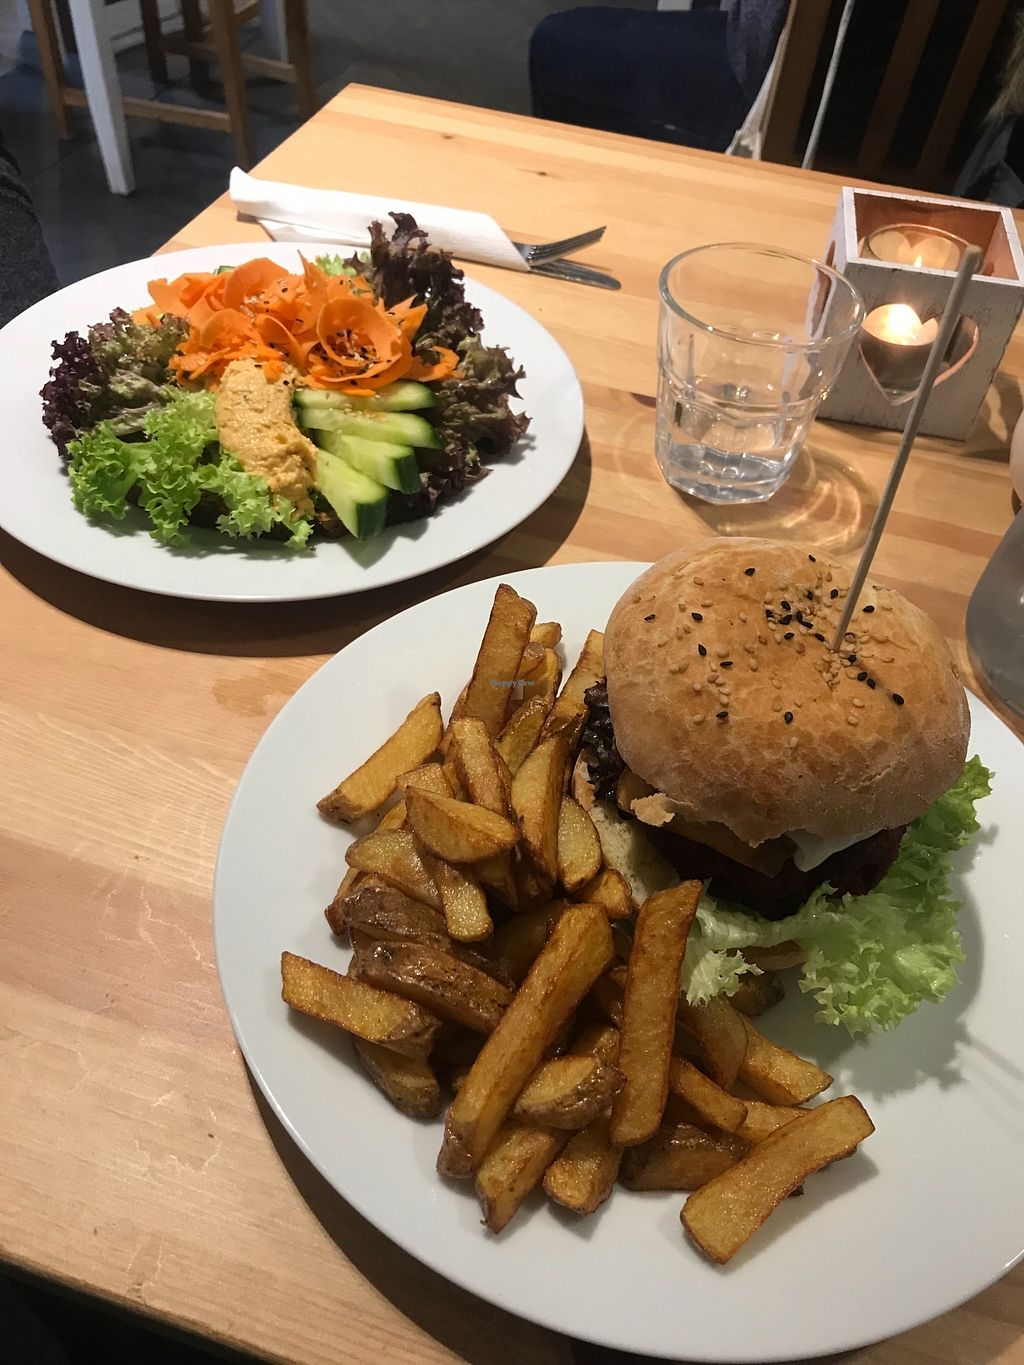 """Photo of Holy Cow  by <a href=""""/members/profile/AshleighC"""">AshleighC</a> <br/>The 'bloody' beetroot burger I had and my mum's hummus open sandwich <br/> March 30, 2018  - <a href='/contact/abuse/image/83562/378429'>Report</a>"""